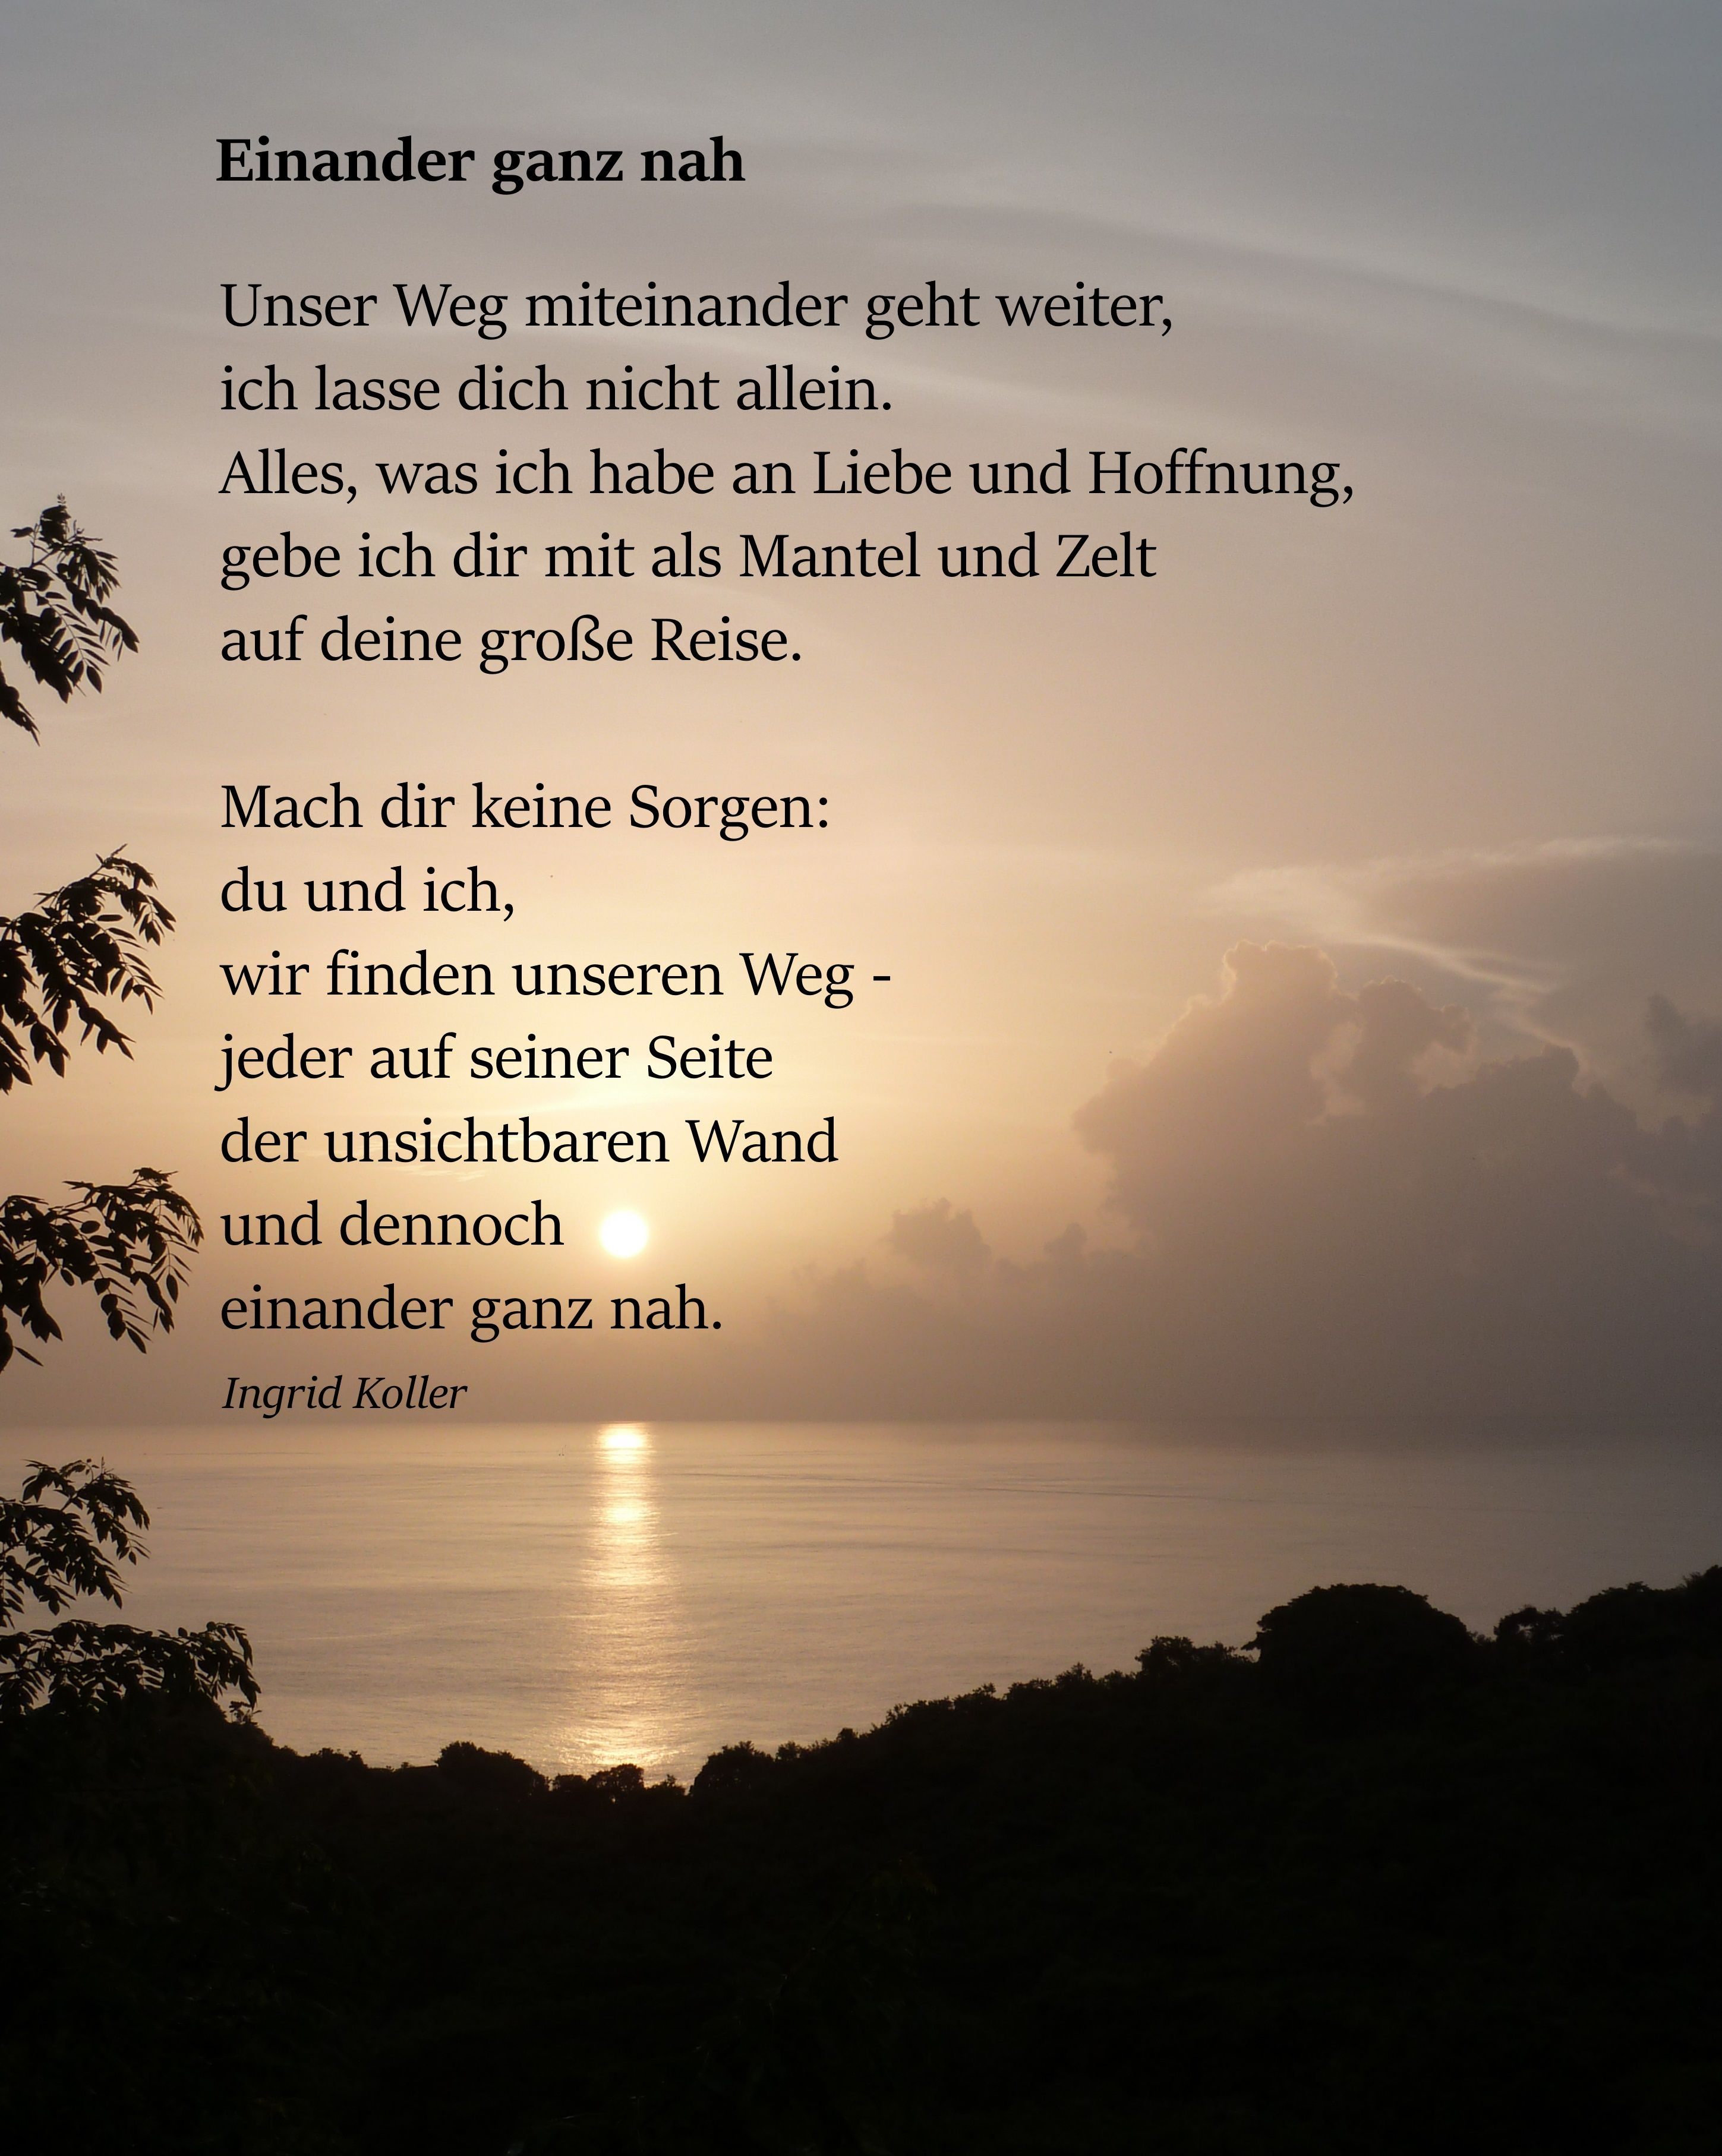 "Einander ganz nah Related posts:Schweige und HandleLove quote - ""You put your arms around me and I'm home"" - love lyrics {Courtesy ."